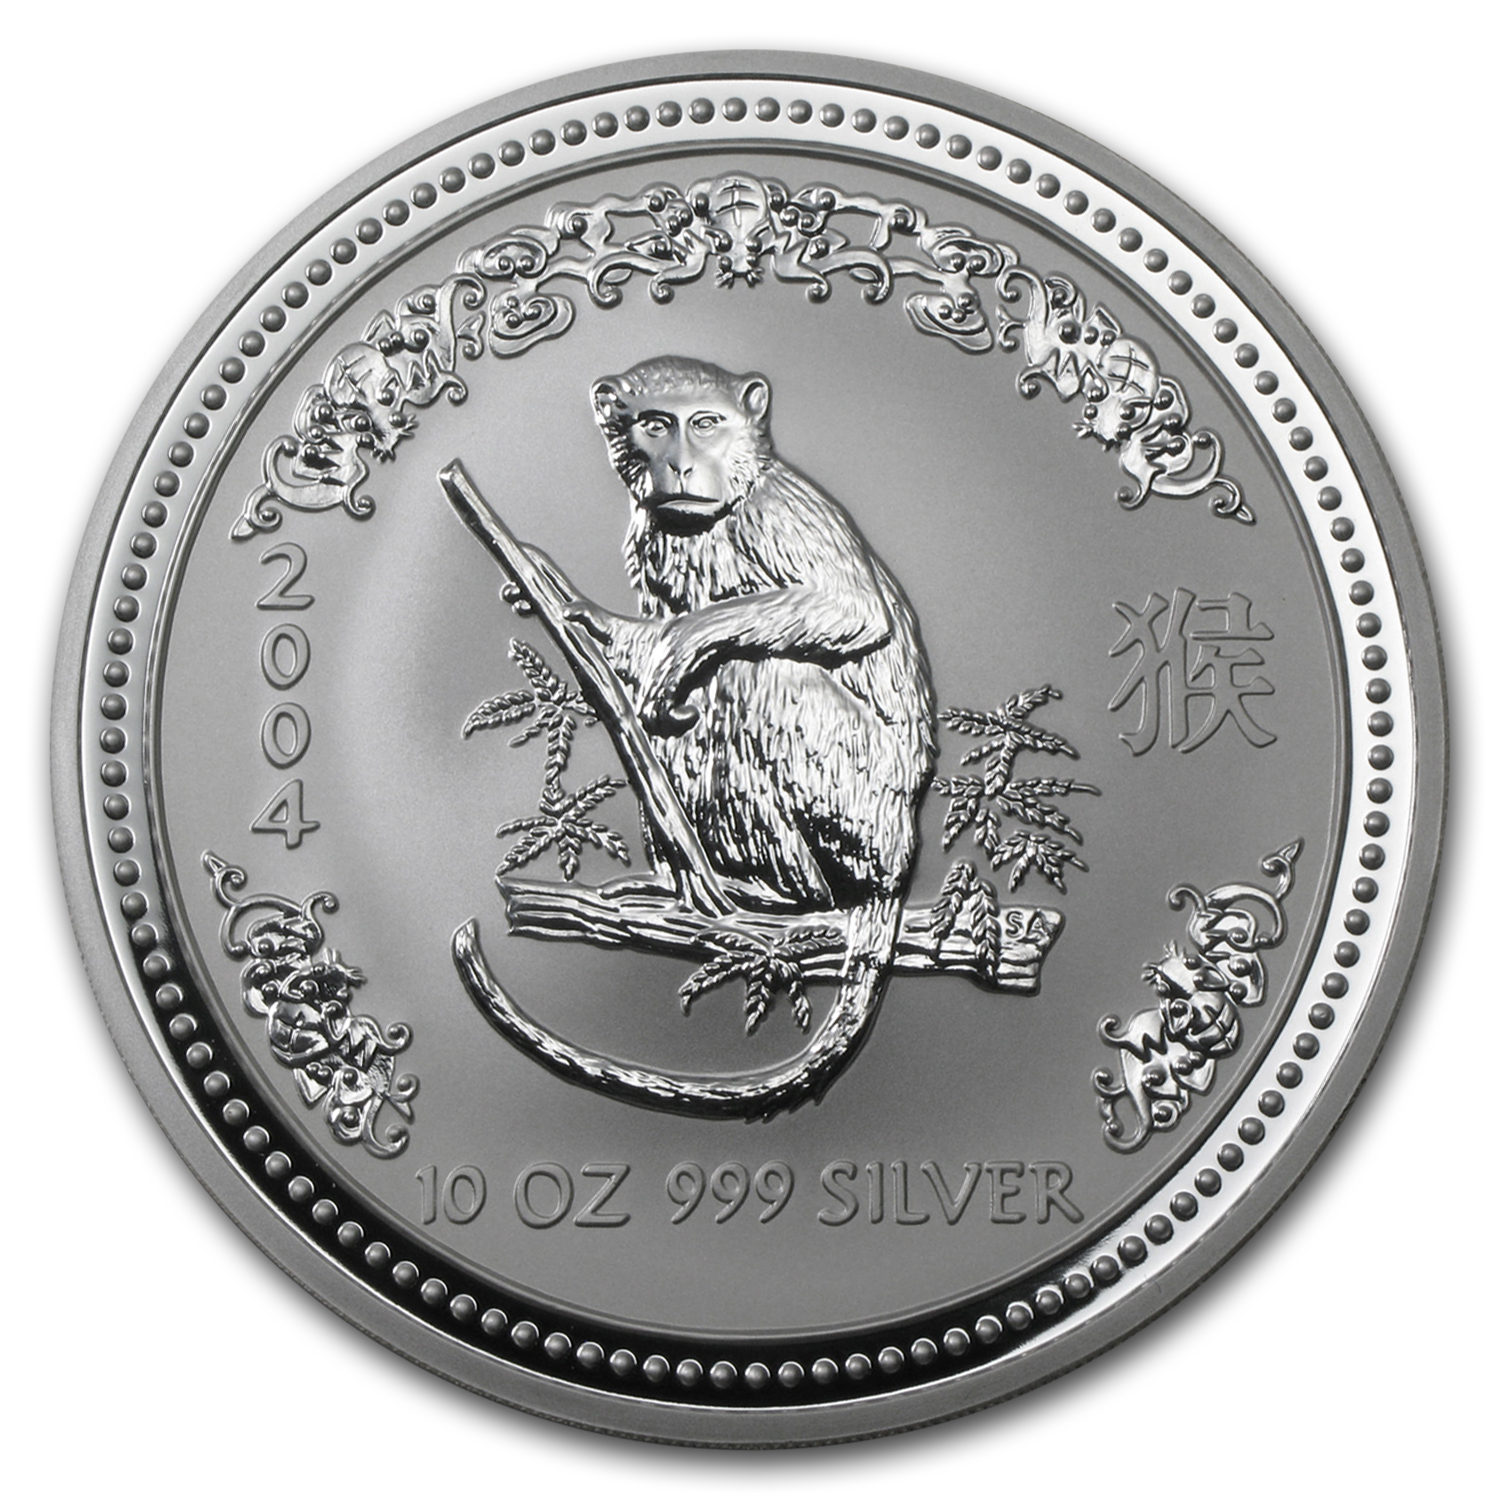 2004 Australia 10 oz Silver Year of the Monkey BU